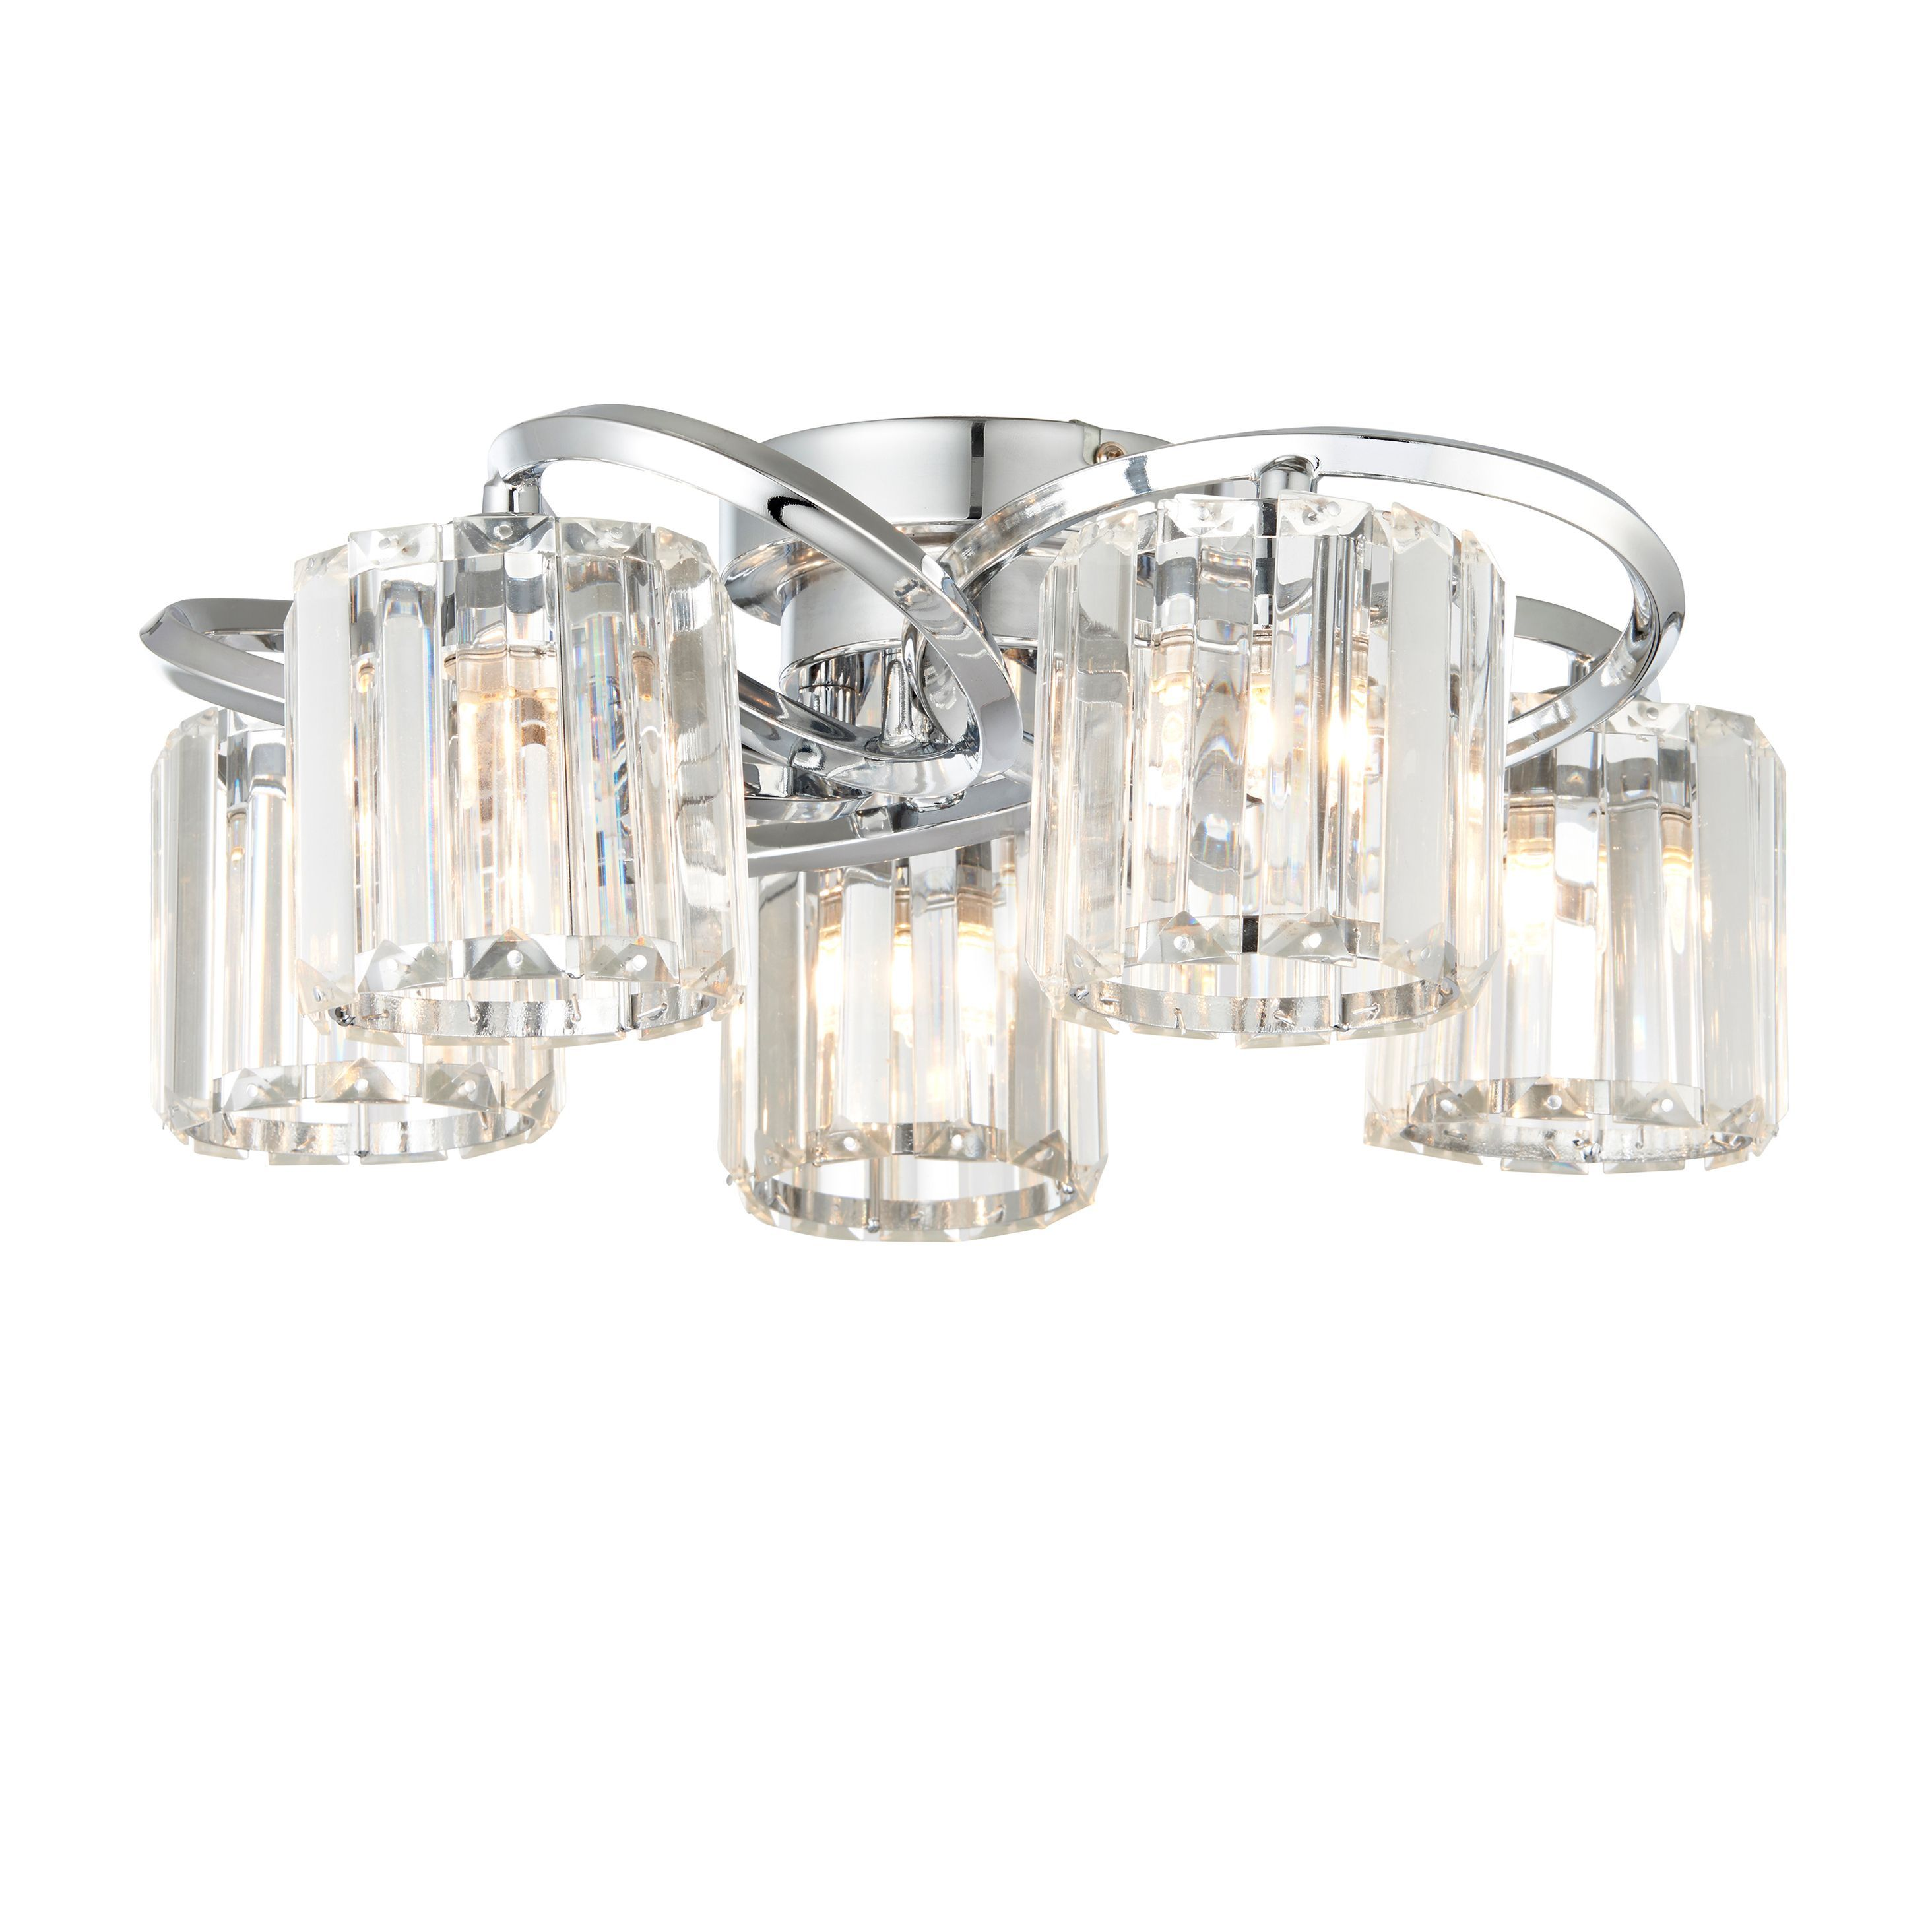 Bromley Bevelled Glass Chrome Effect 5 Lamp Ceiling Light - B&Q for all your  home and garden supplies and advice on all the latest DIY trends